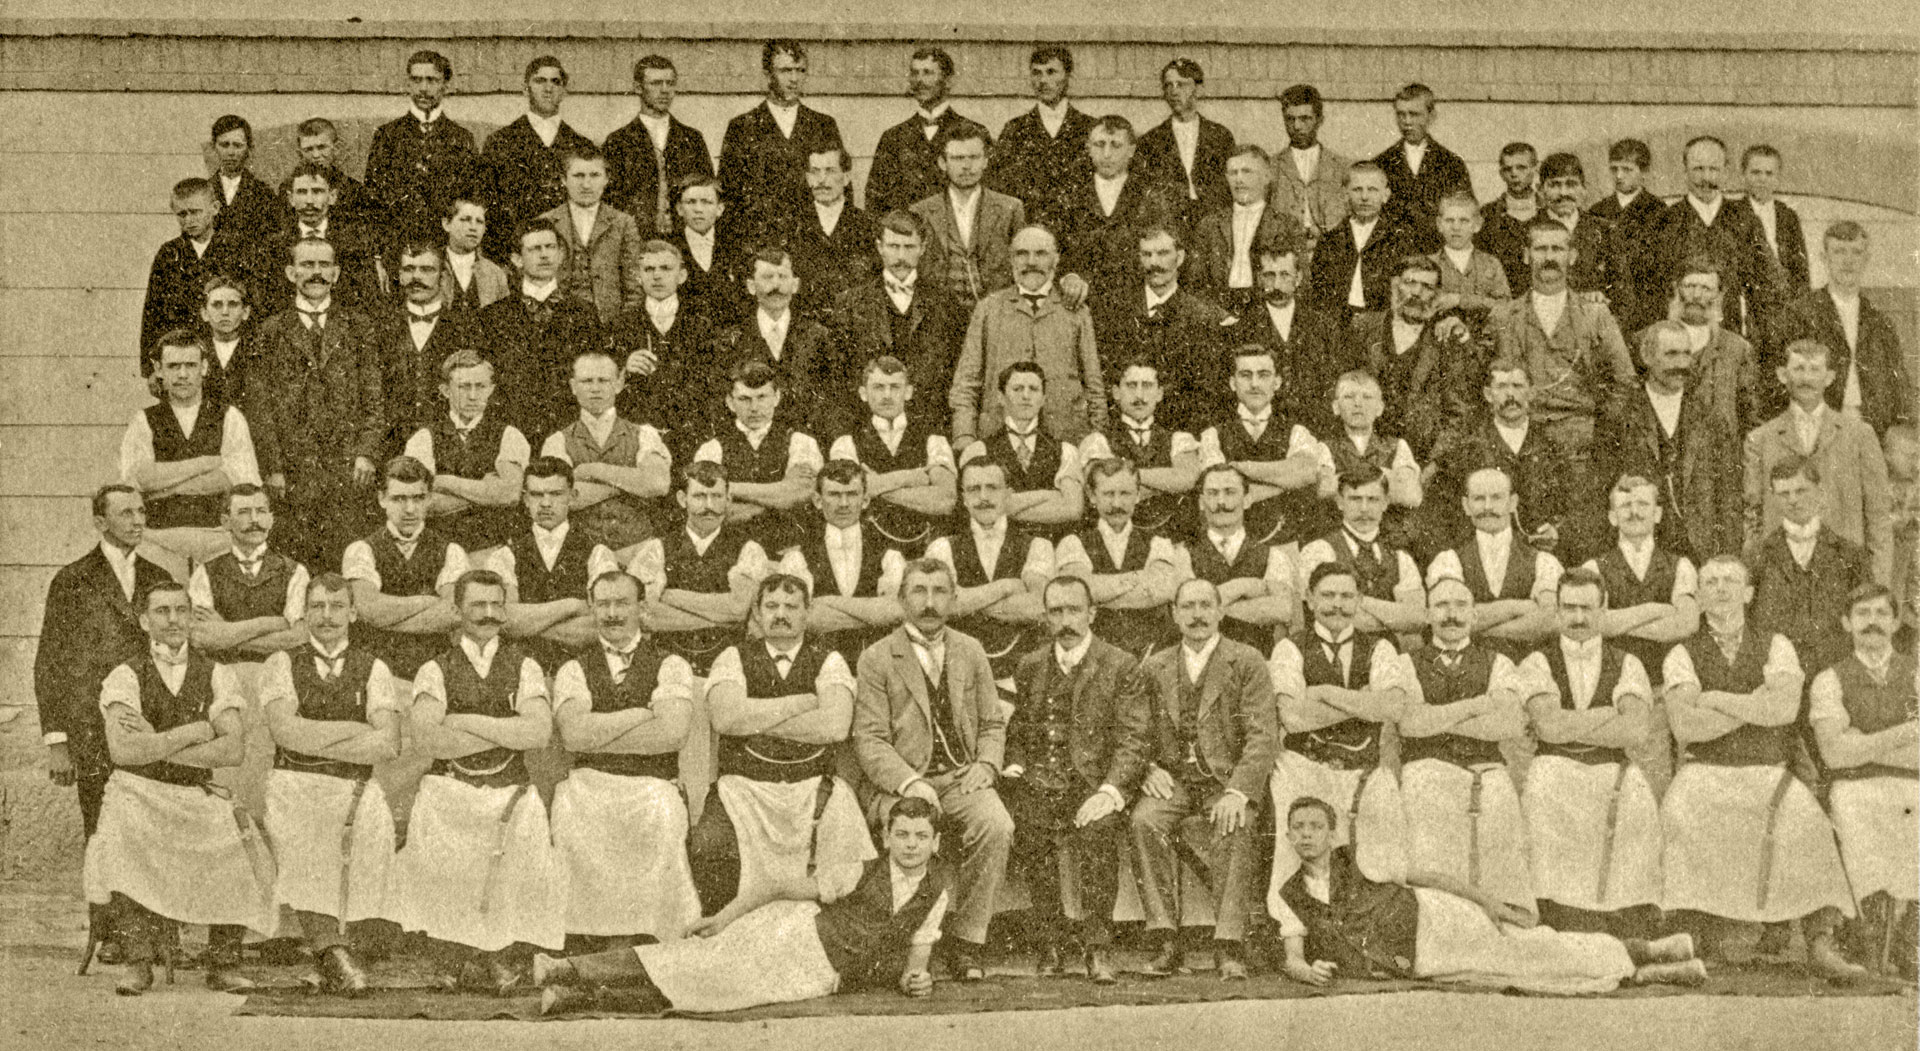 One part of factory workers in 1906.